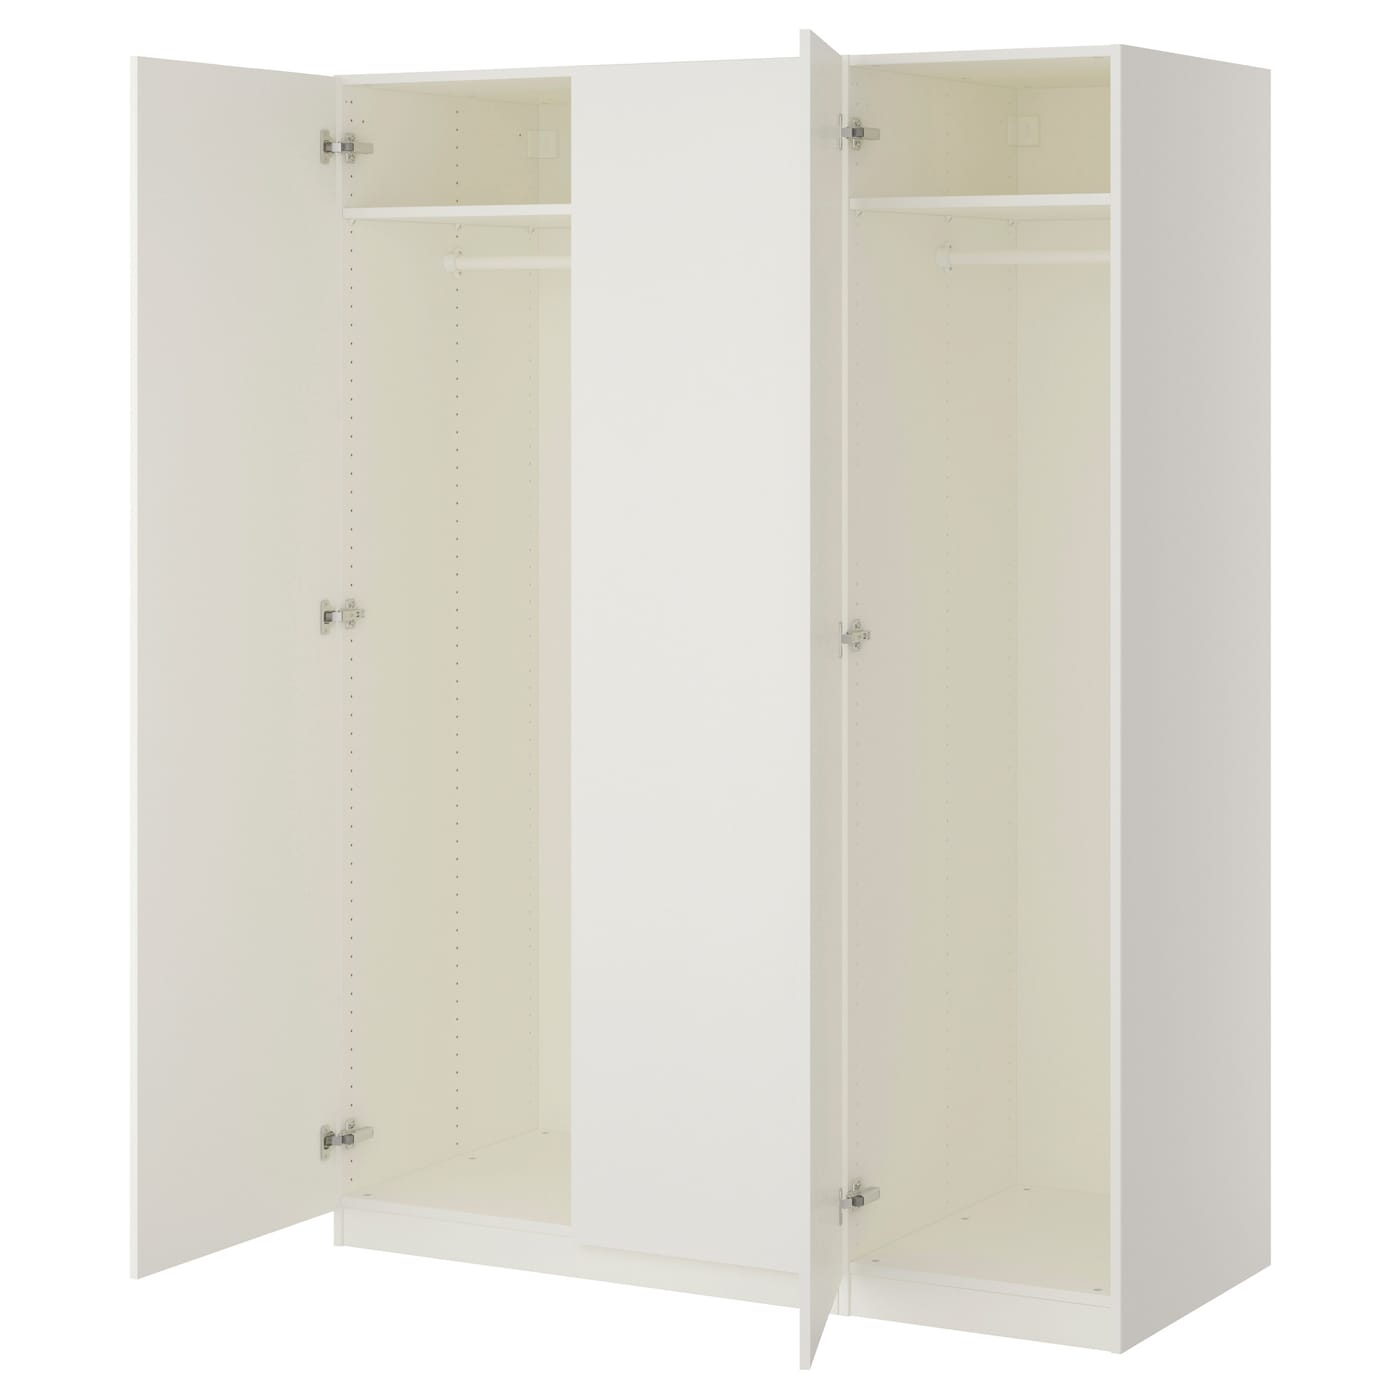 pax armoire penderie blanc forsand blanc 150x60x201 cm ikea. Black Bedroom Furniture Sets. Home Design Ideas